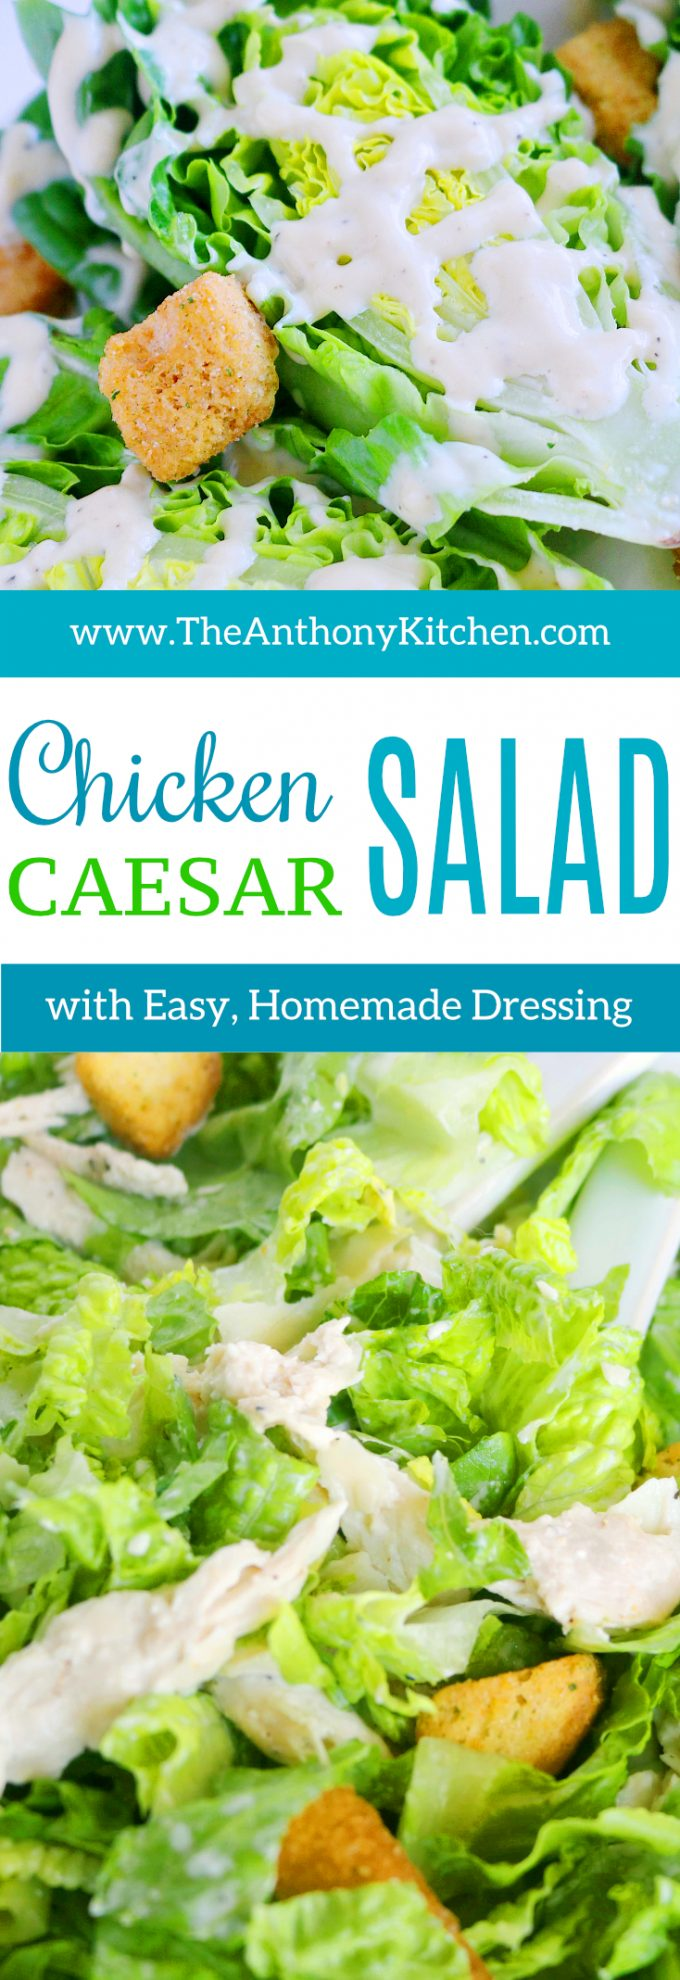 EASY CAESAR SALAD WITH CHICKEN AND HOMEMADE DRESSING